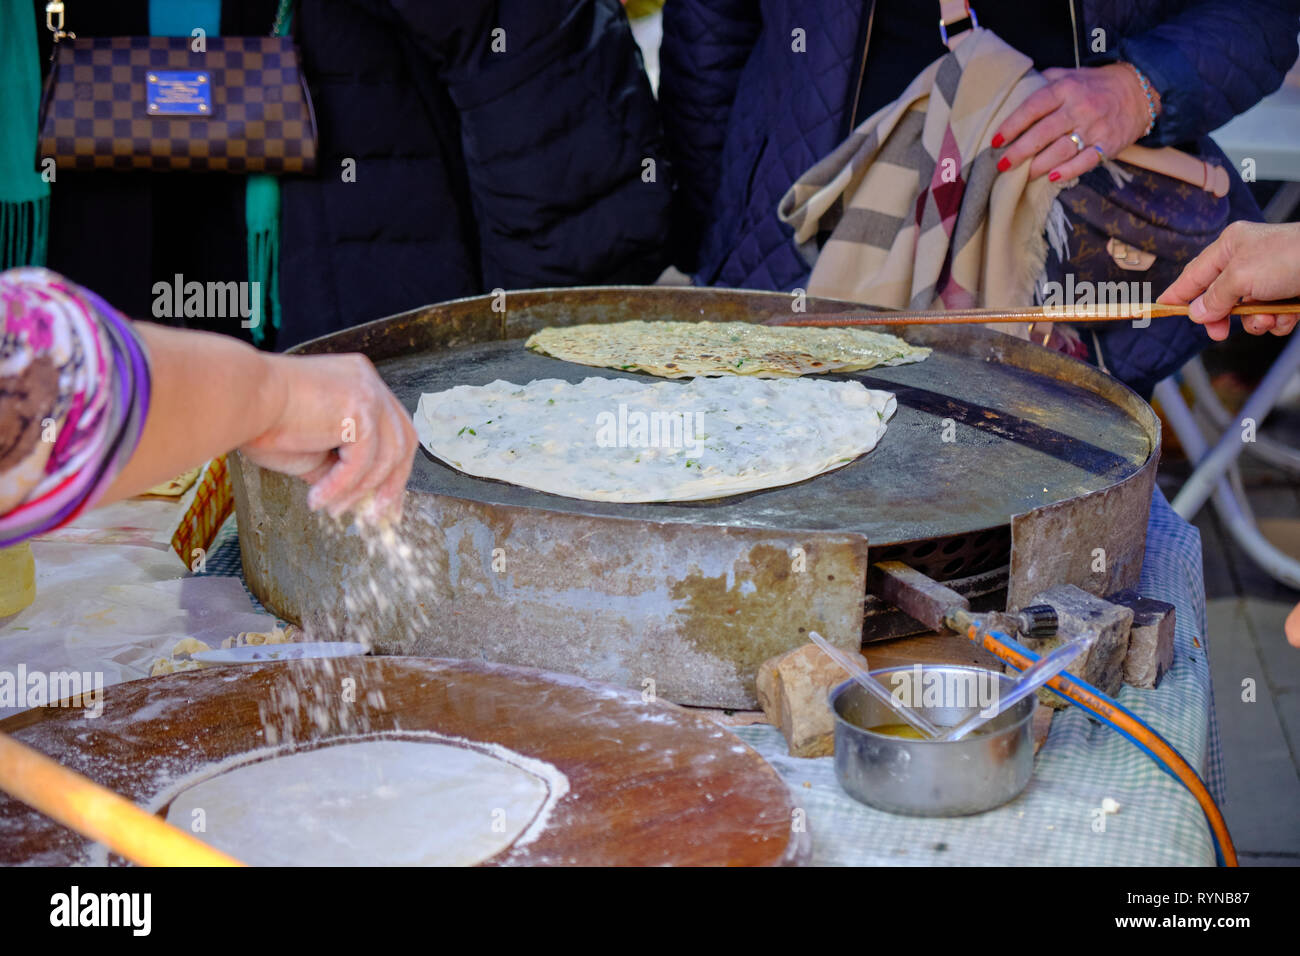 Local woman preparing turkish pancakes (gozleme) . Focus on hot plate and method in Antalya, Turkey - December 29, 2018 Stock Photo